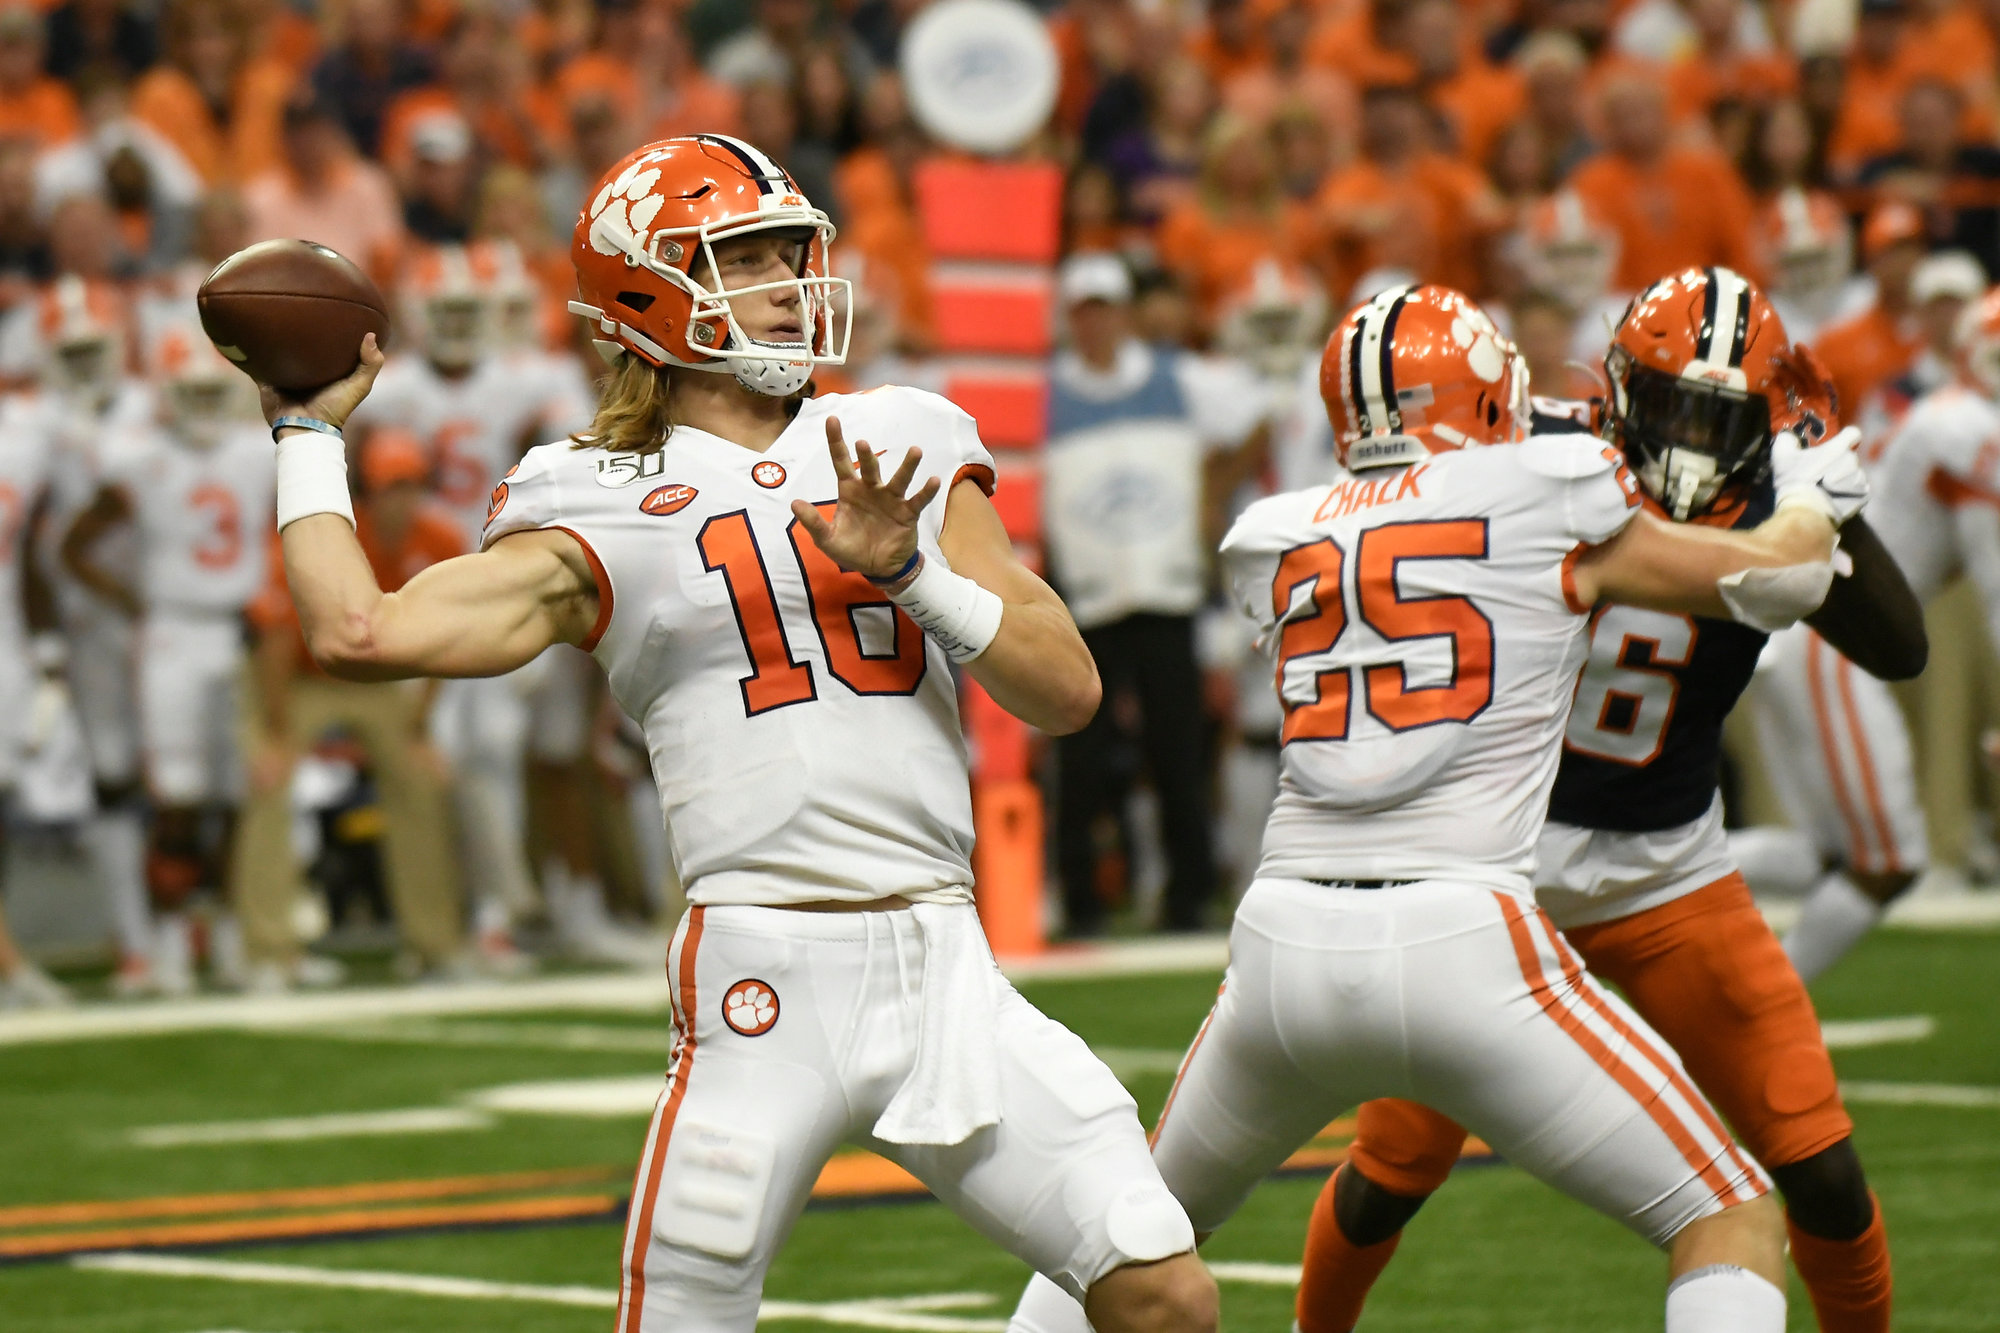 Lawrence leads No. 1 Clemson past Syracuse 41-6 | The ...